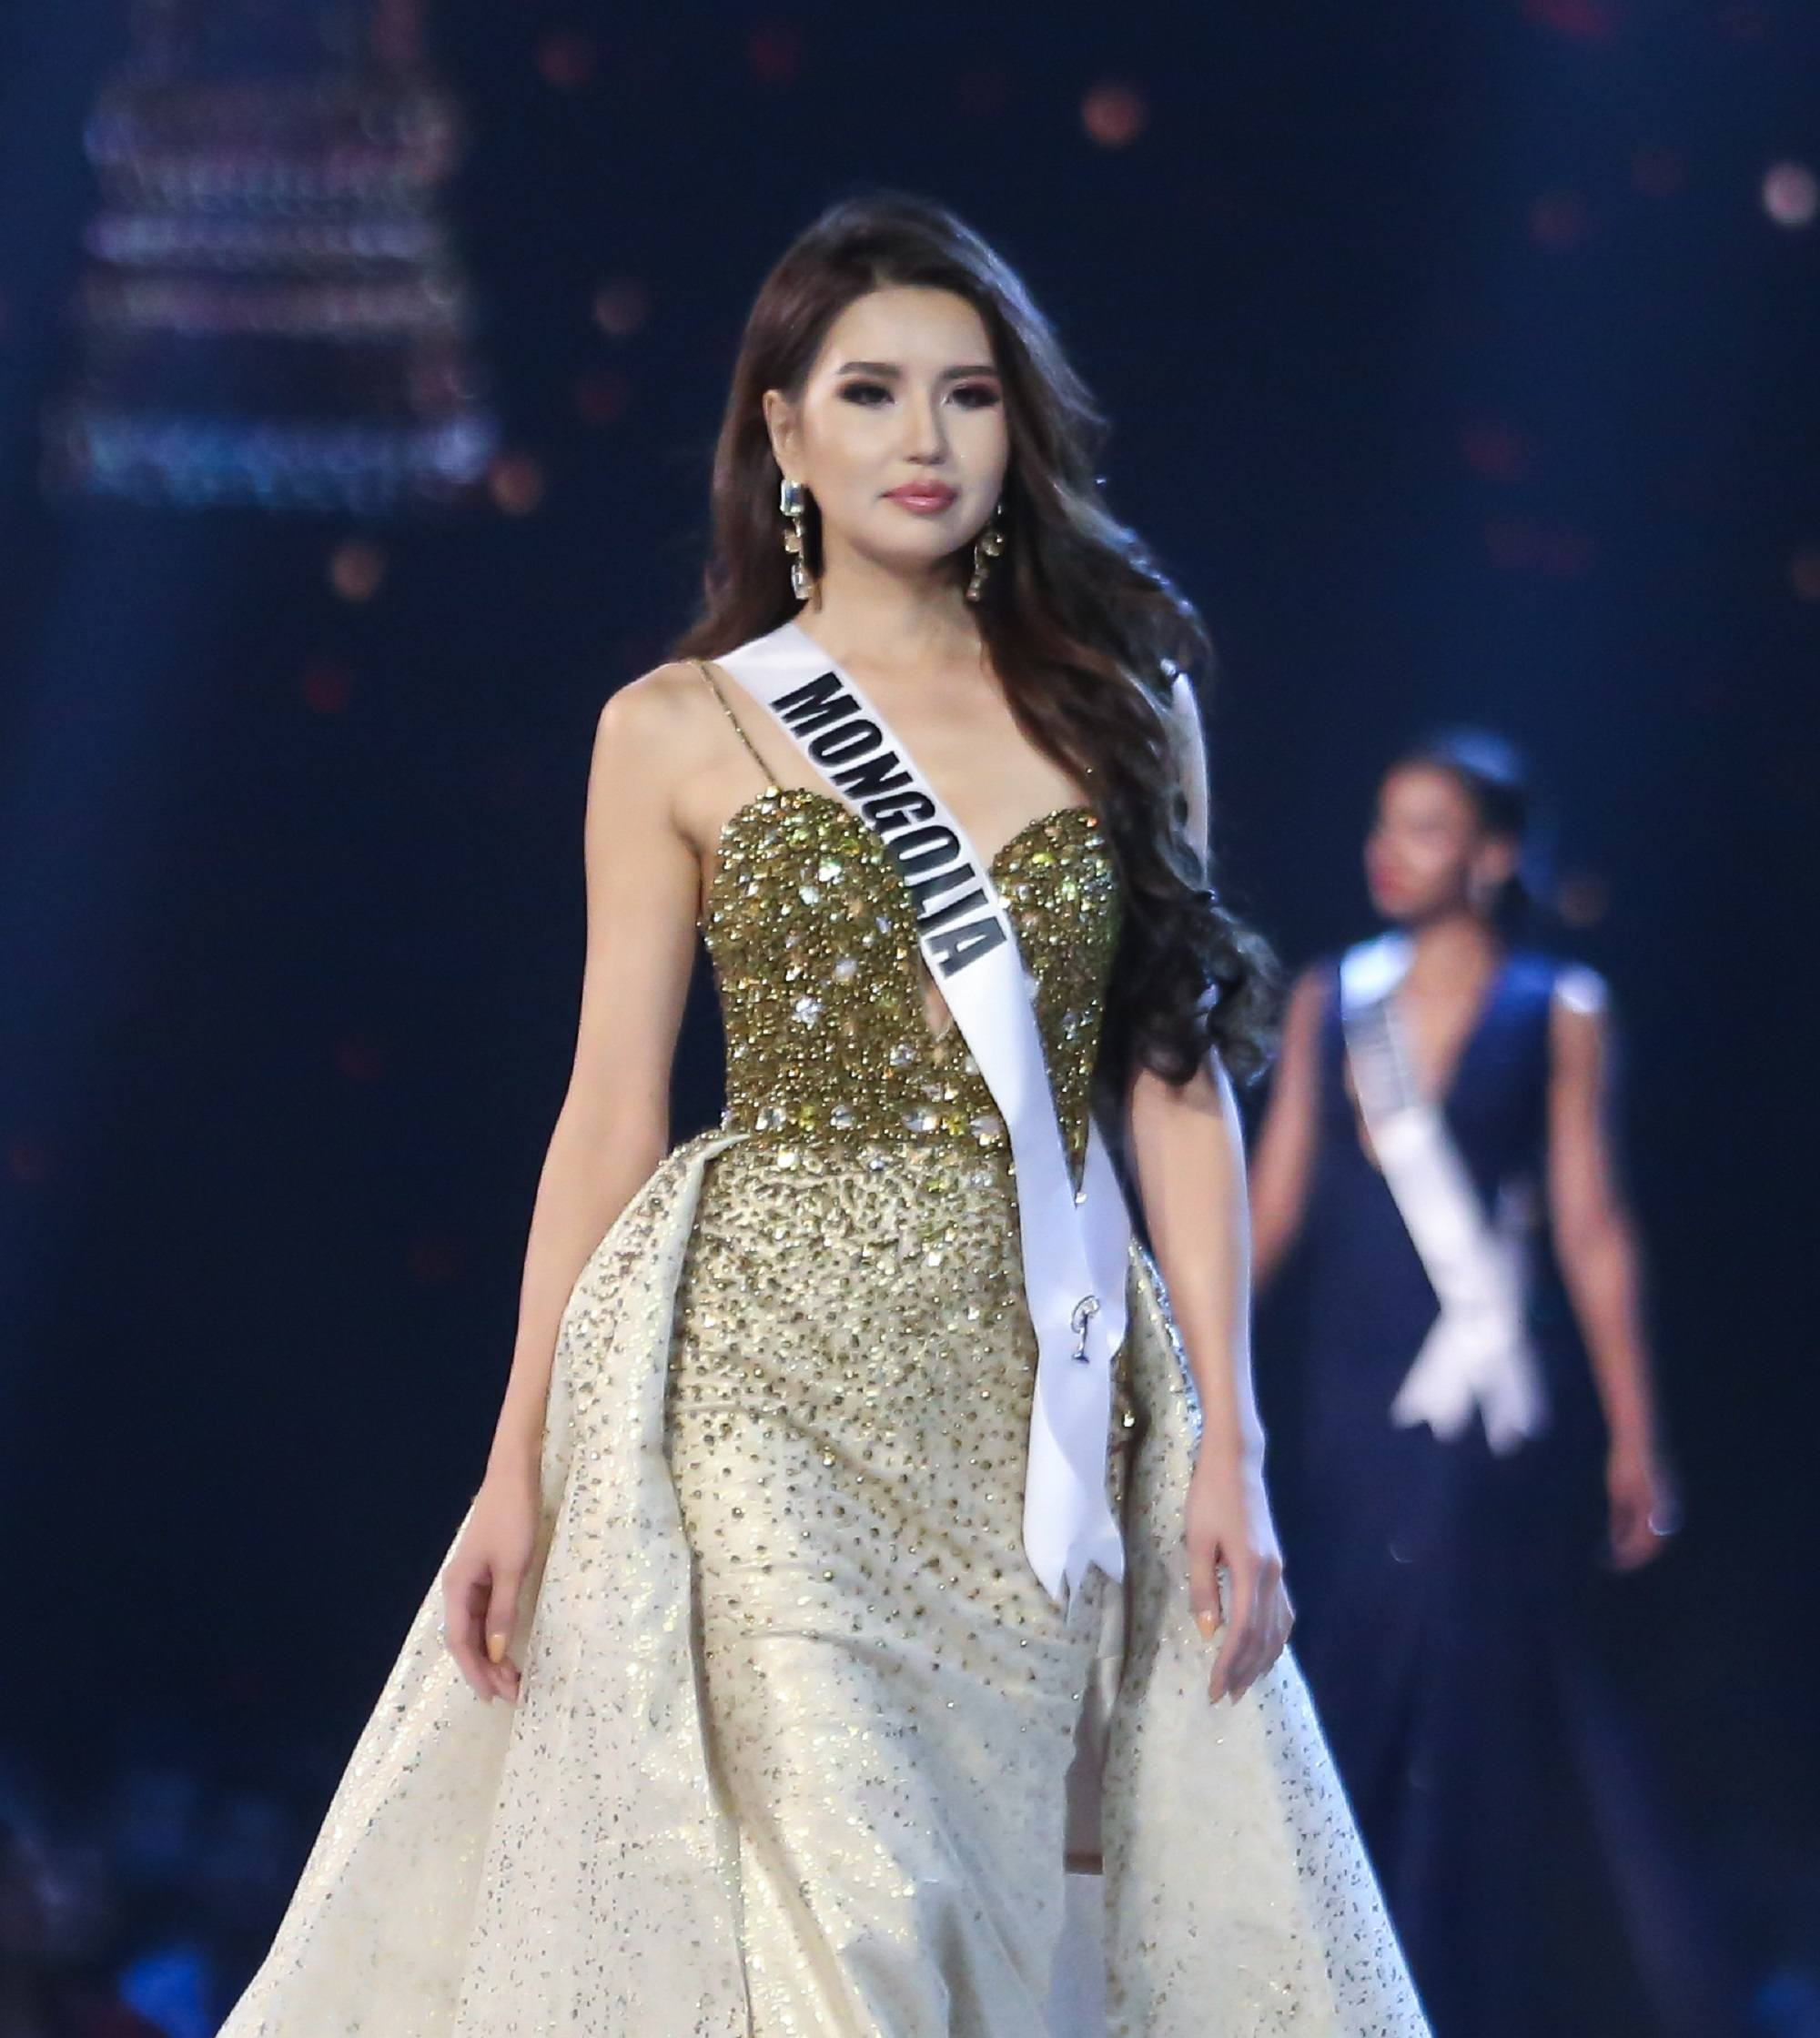 Miss Universe 2018 hairstyles: Miss Mongolia Dolgion Delgerjav with long black wavy hair wearing a green and white evening gown on stage